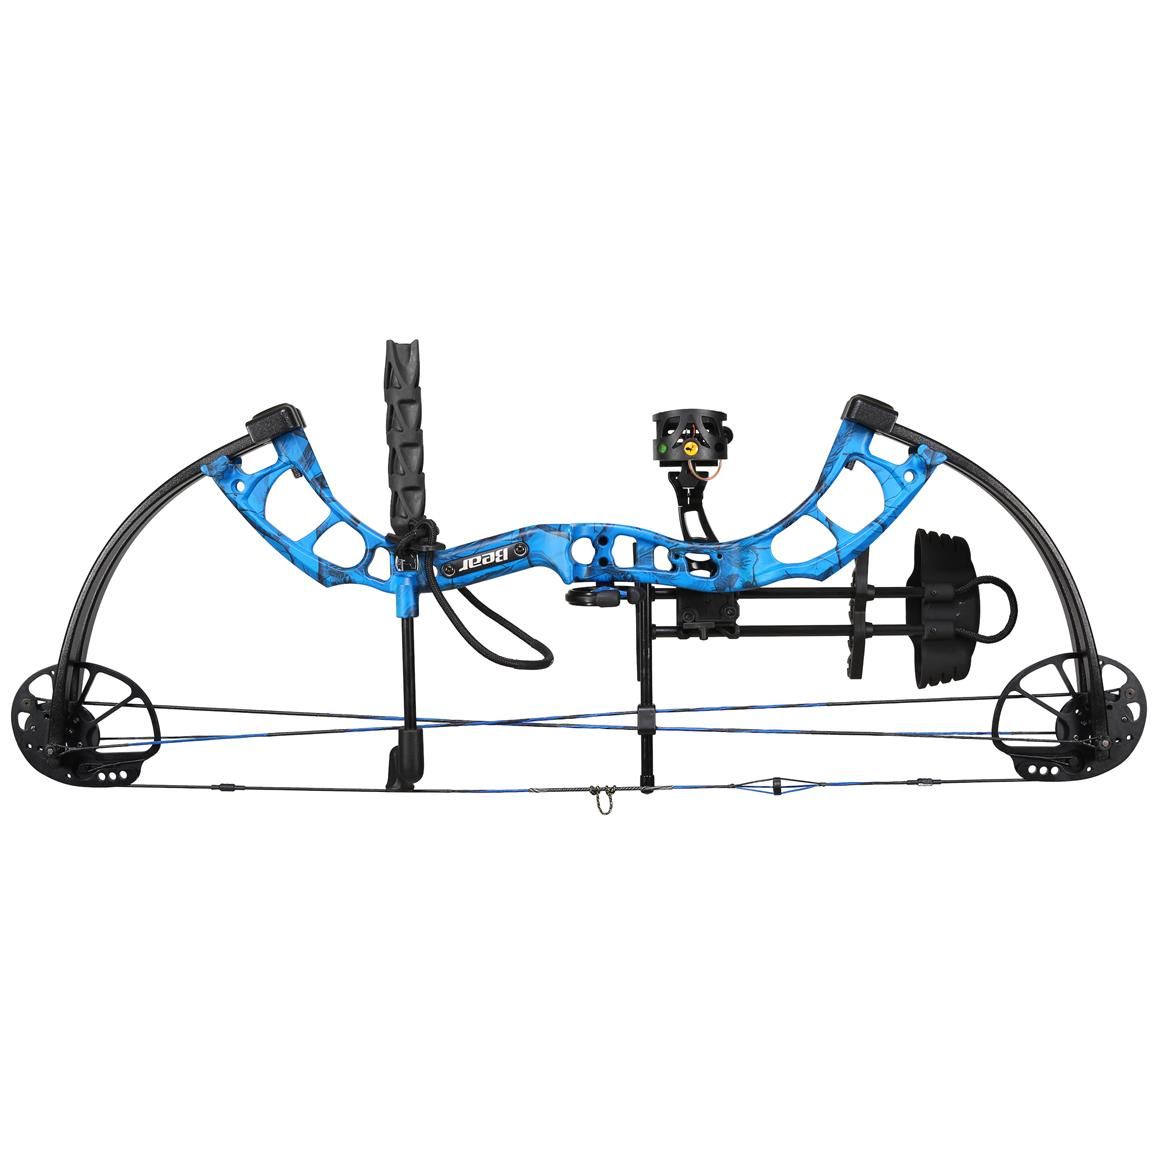 Bear Archery Cruzer Ready to Hunt Compound Bow, Realtree AP Blue